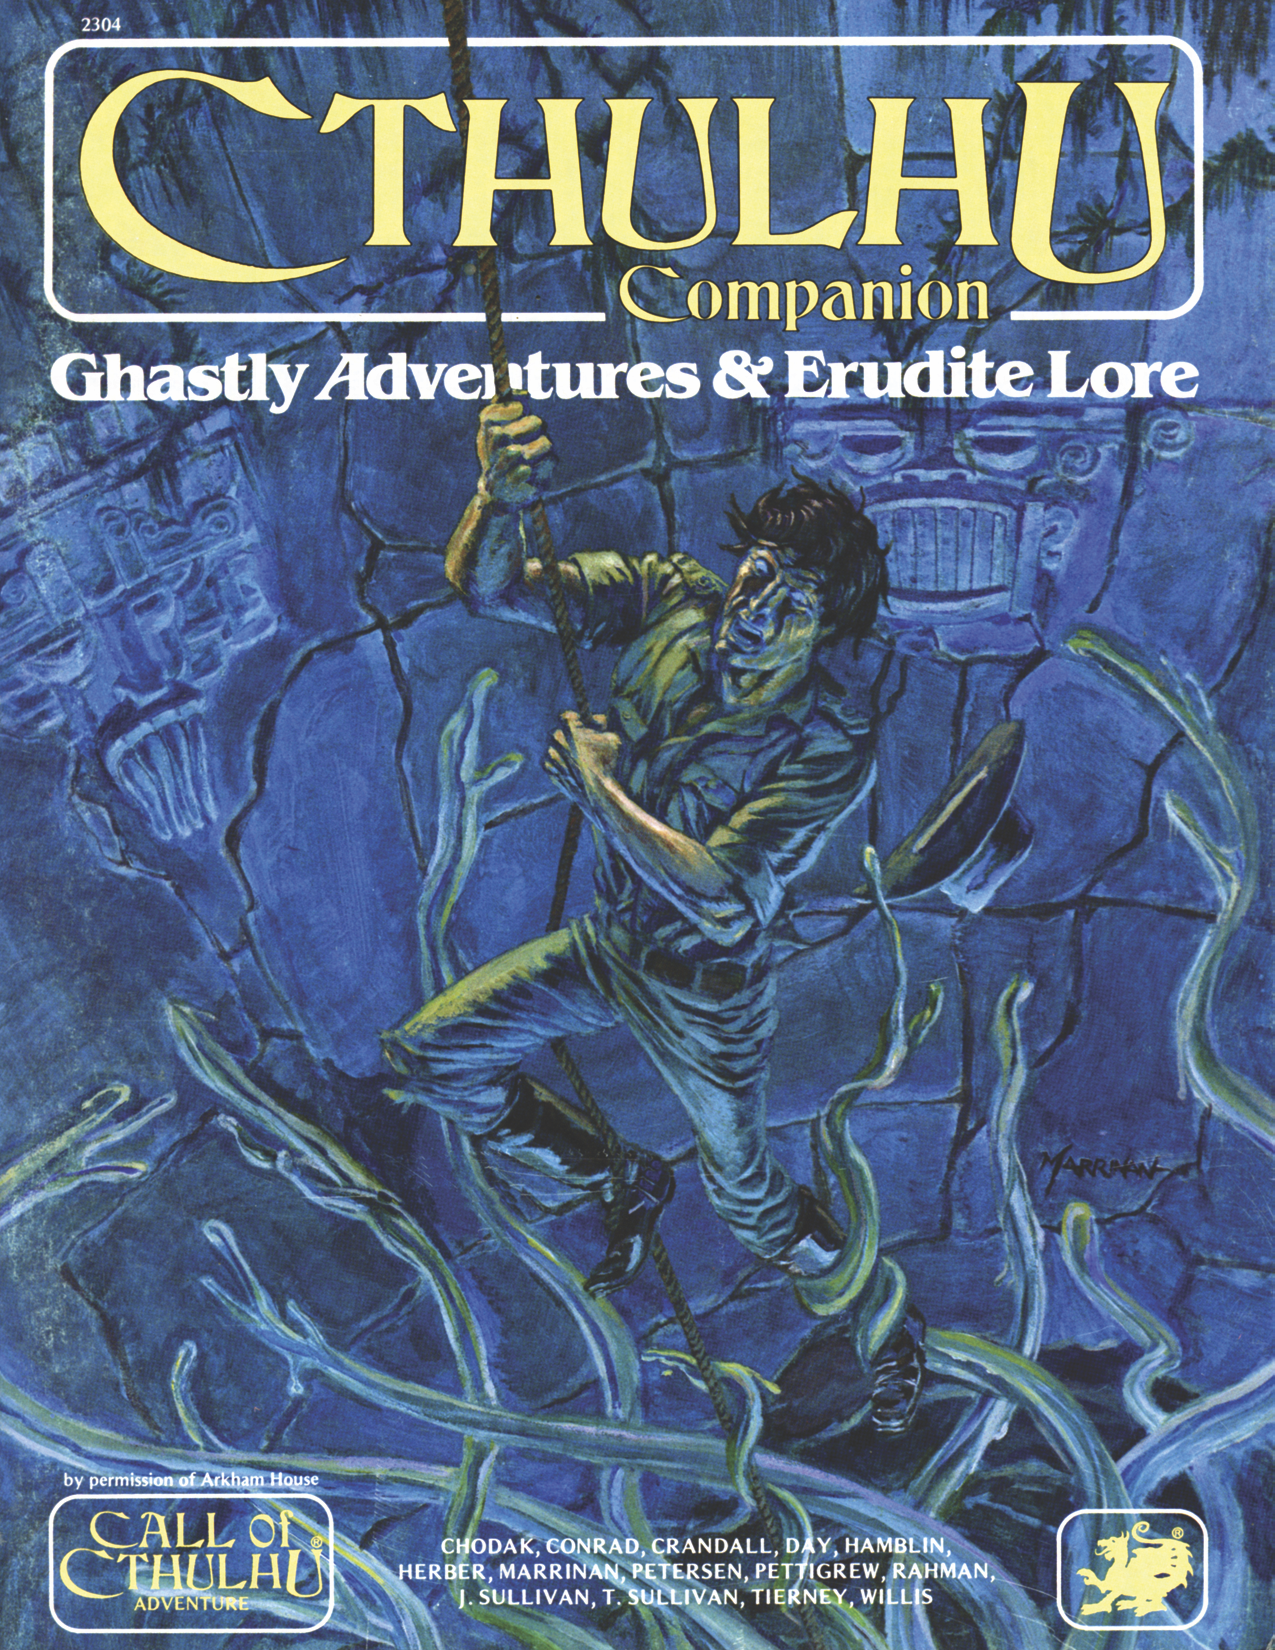 cthulhu-companion-cover.png